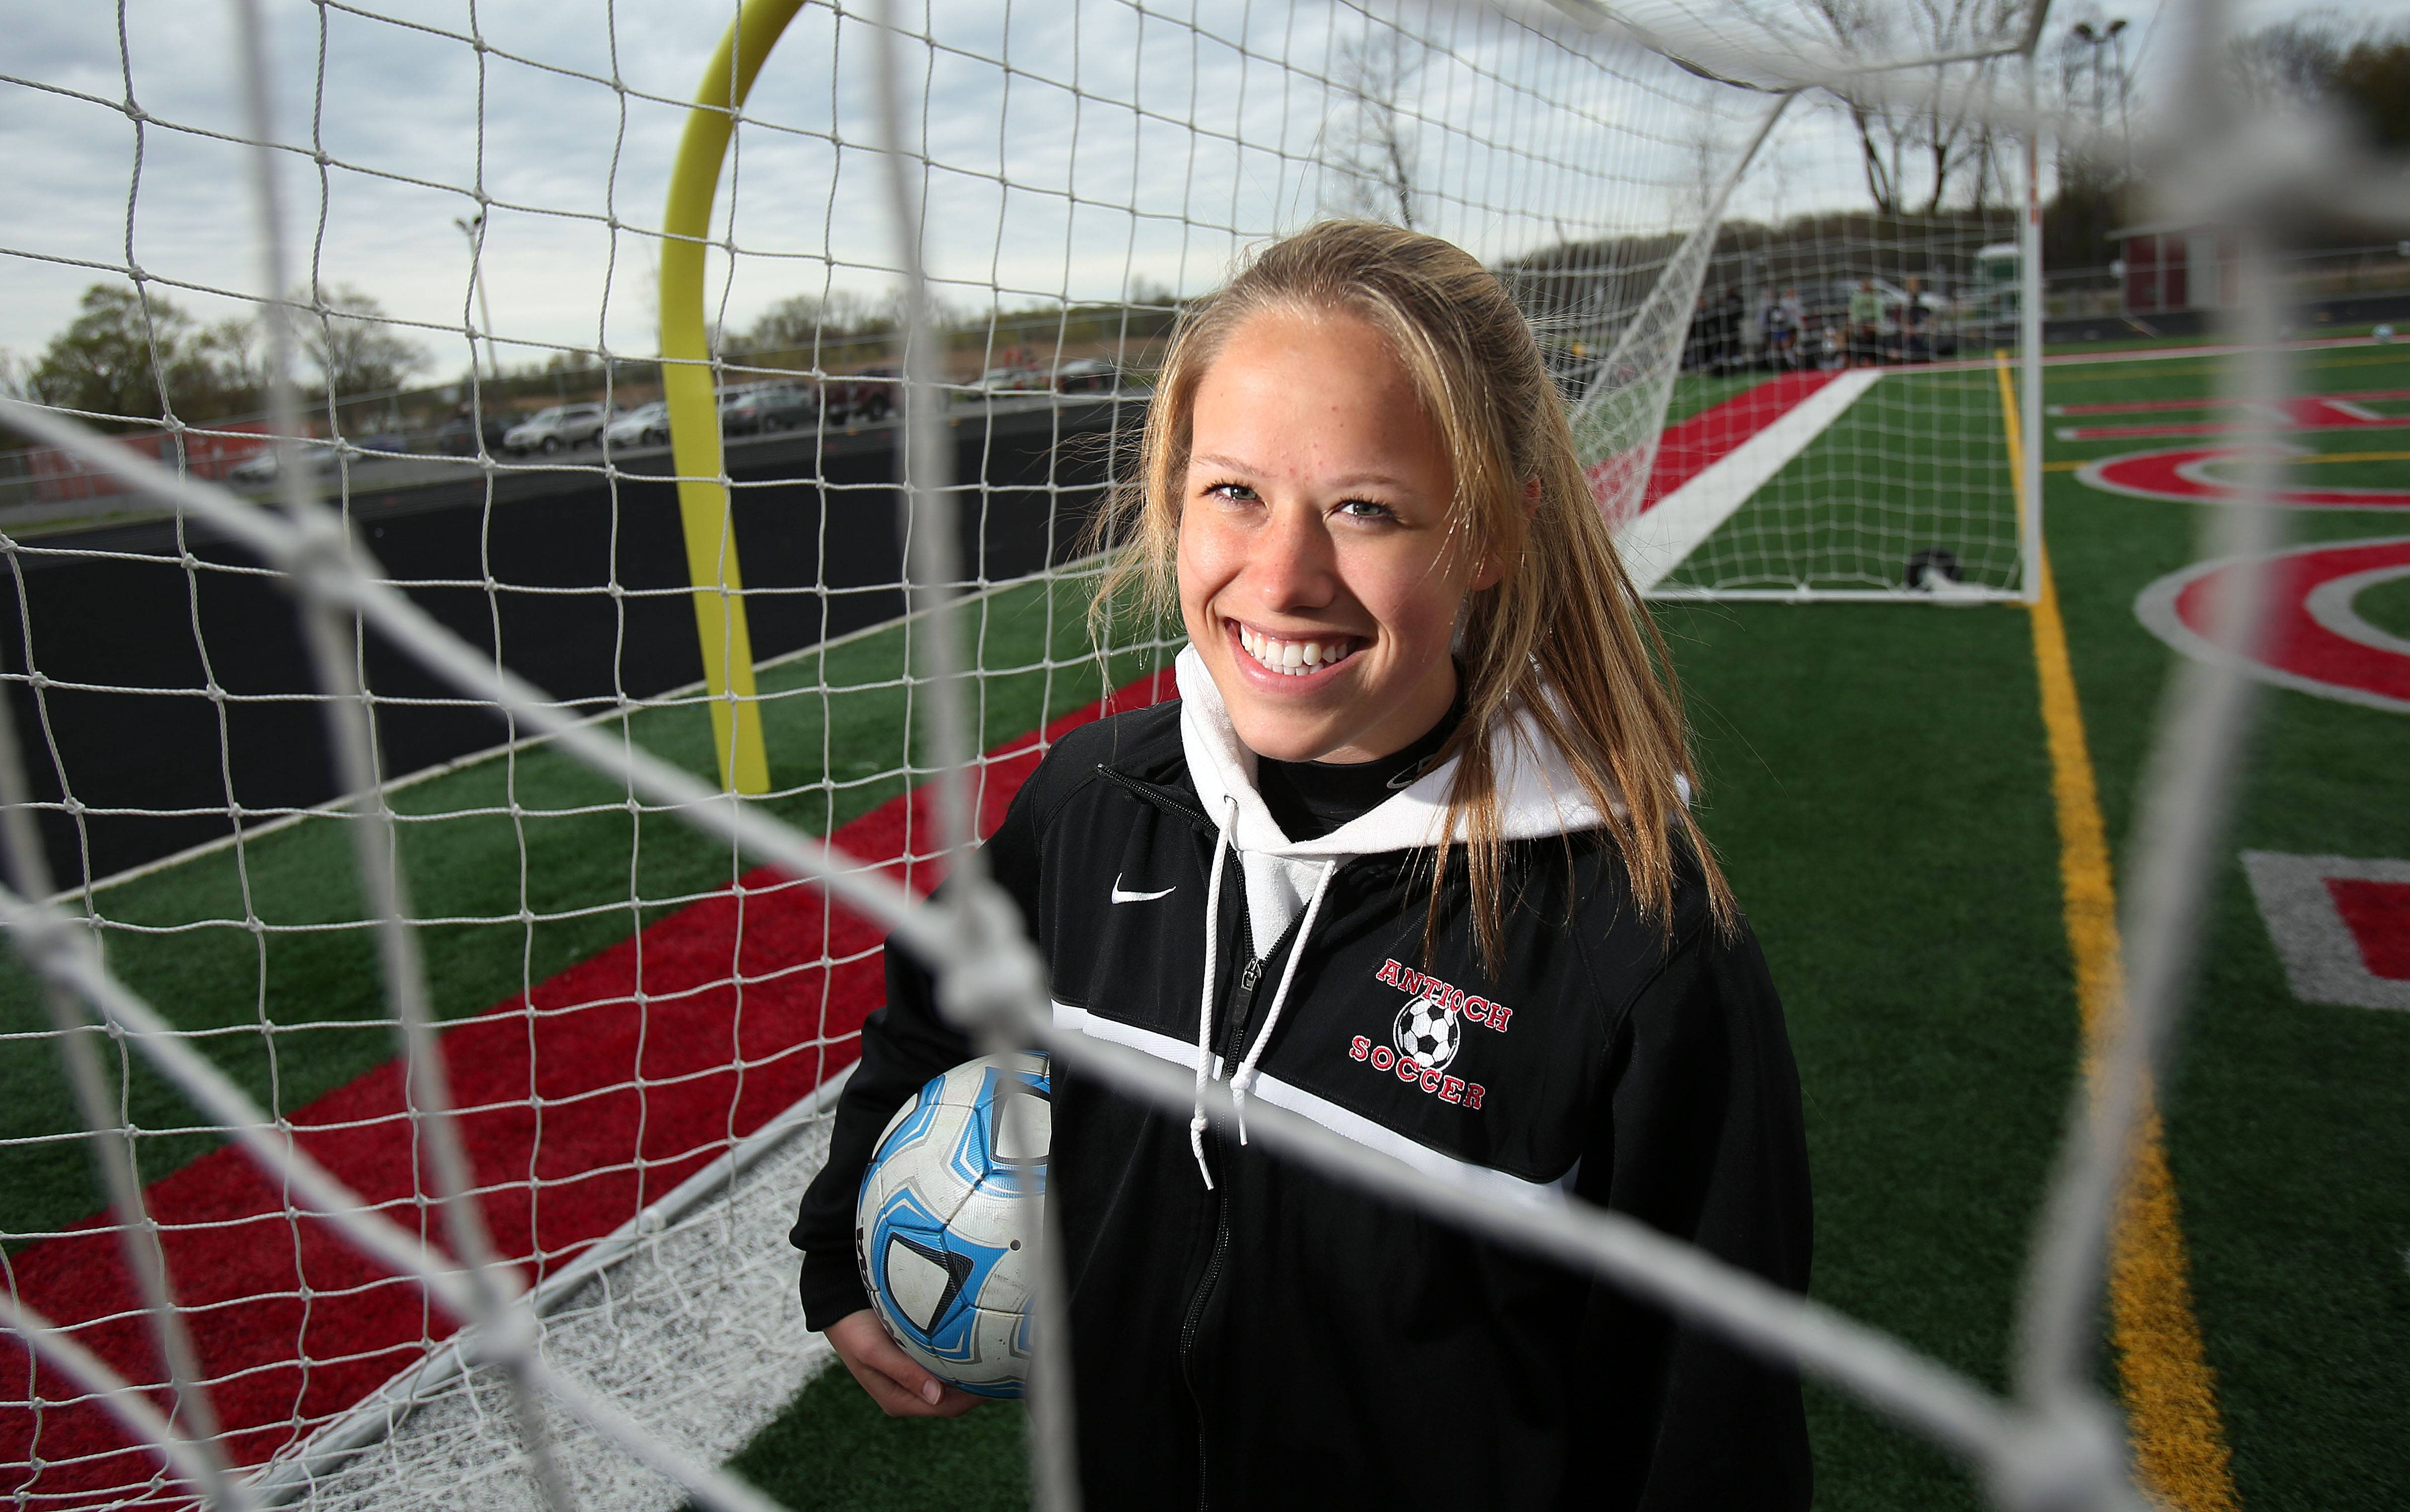 Antioch girls soccer player Courtney Coleman has already scored 22 goals in 19 games. She's on pace to break the school record.